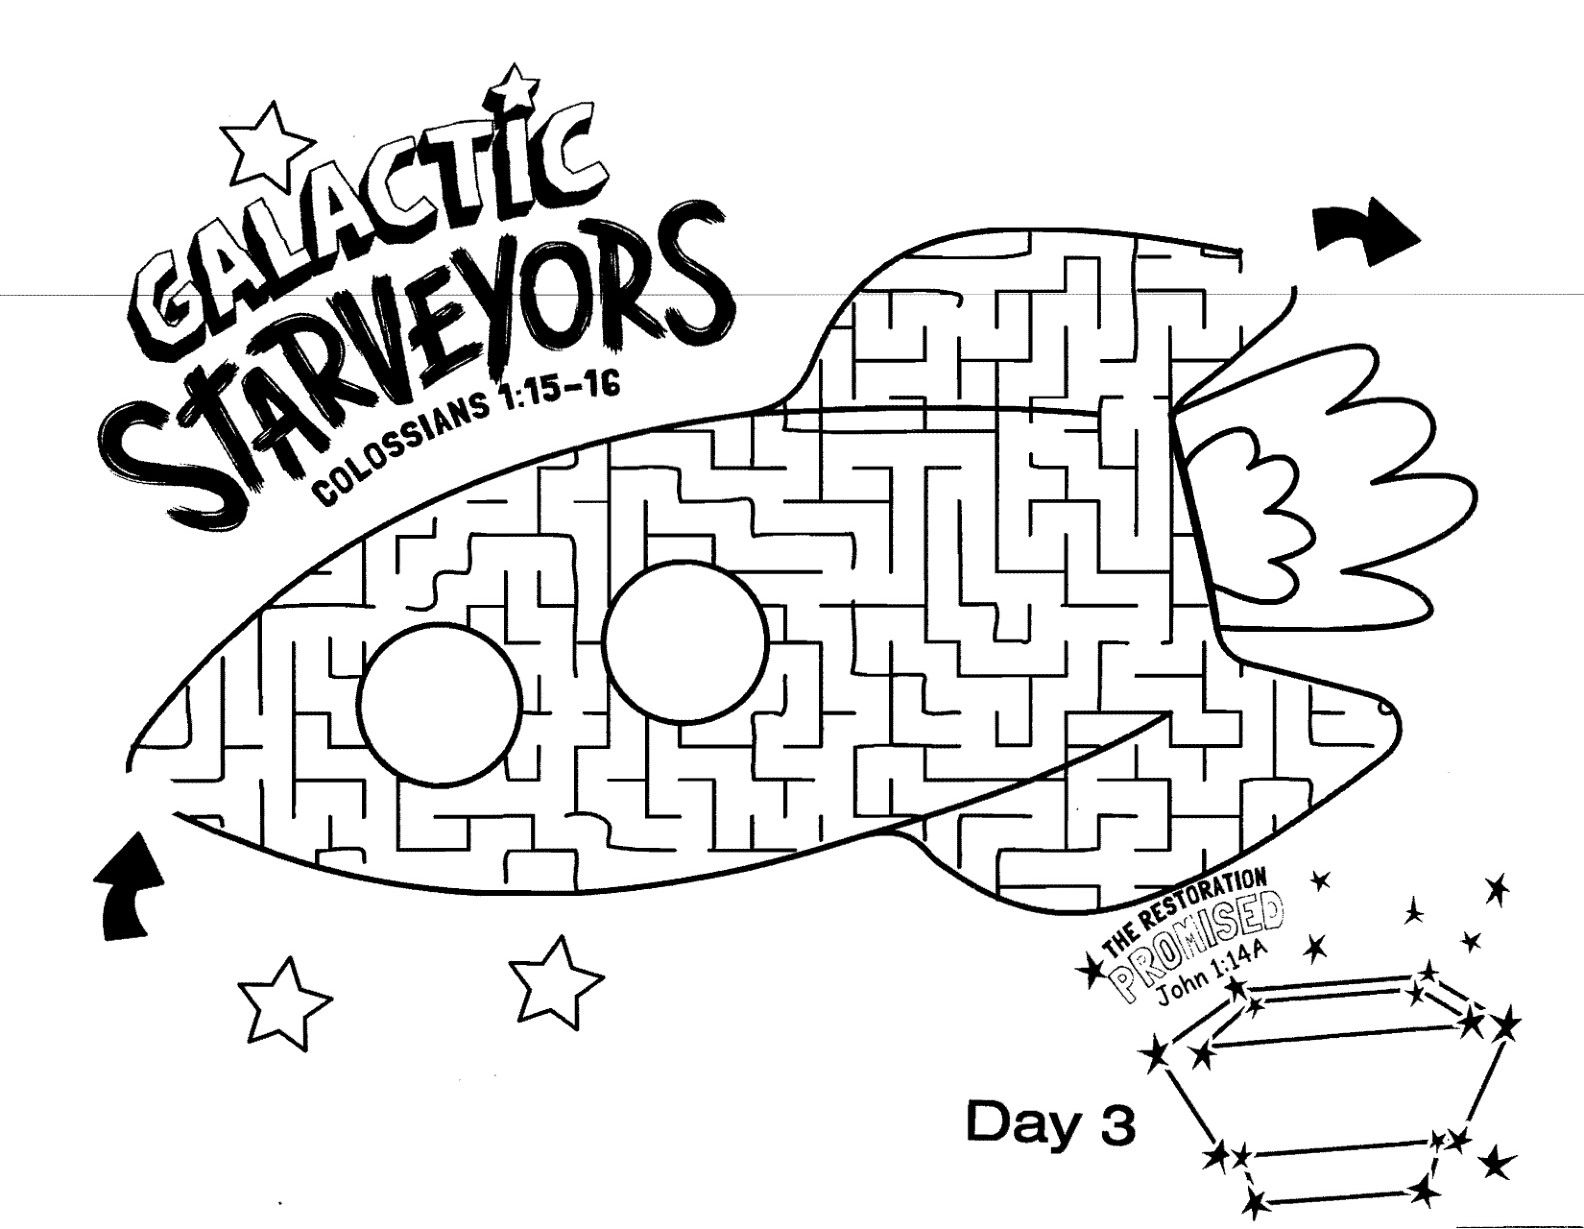 galactic starveyors coloring sheet vbs 2017 day 3 vbs pinterest